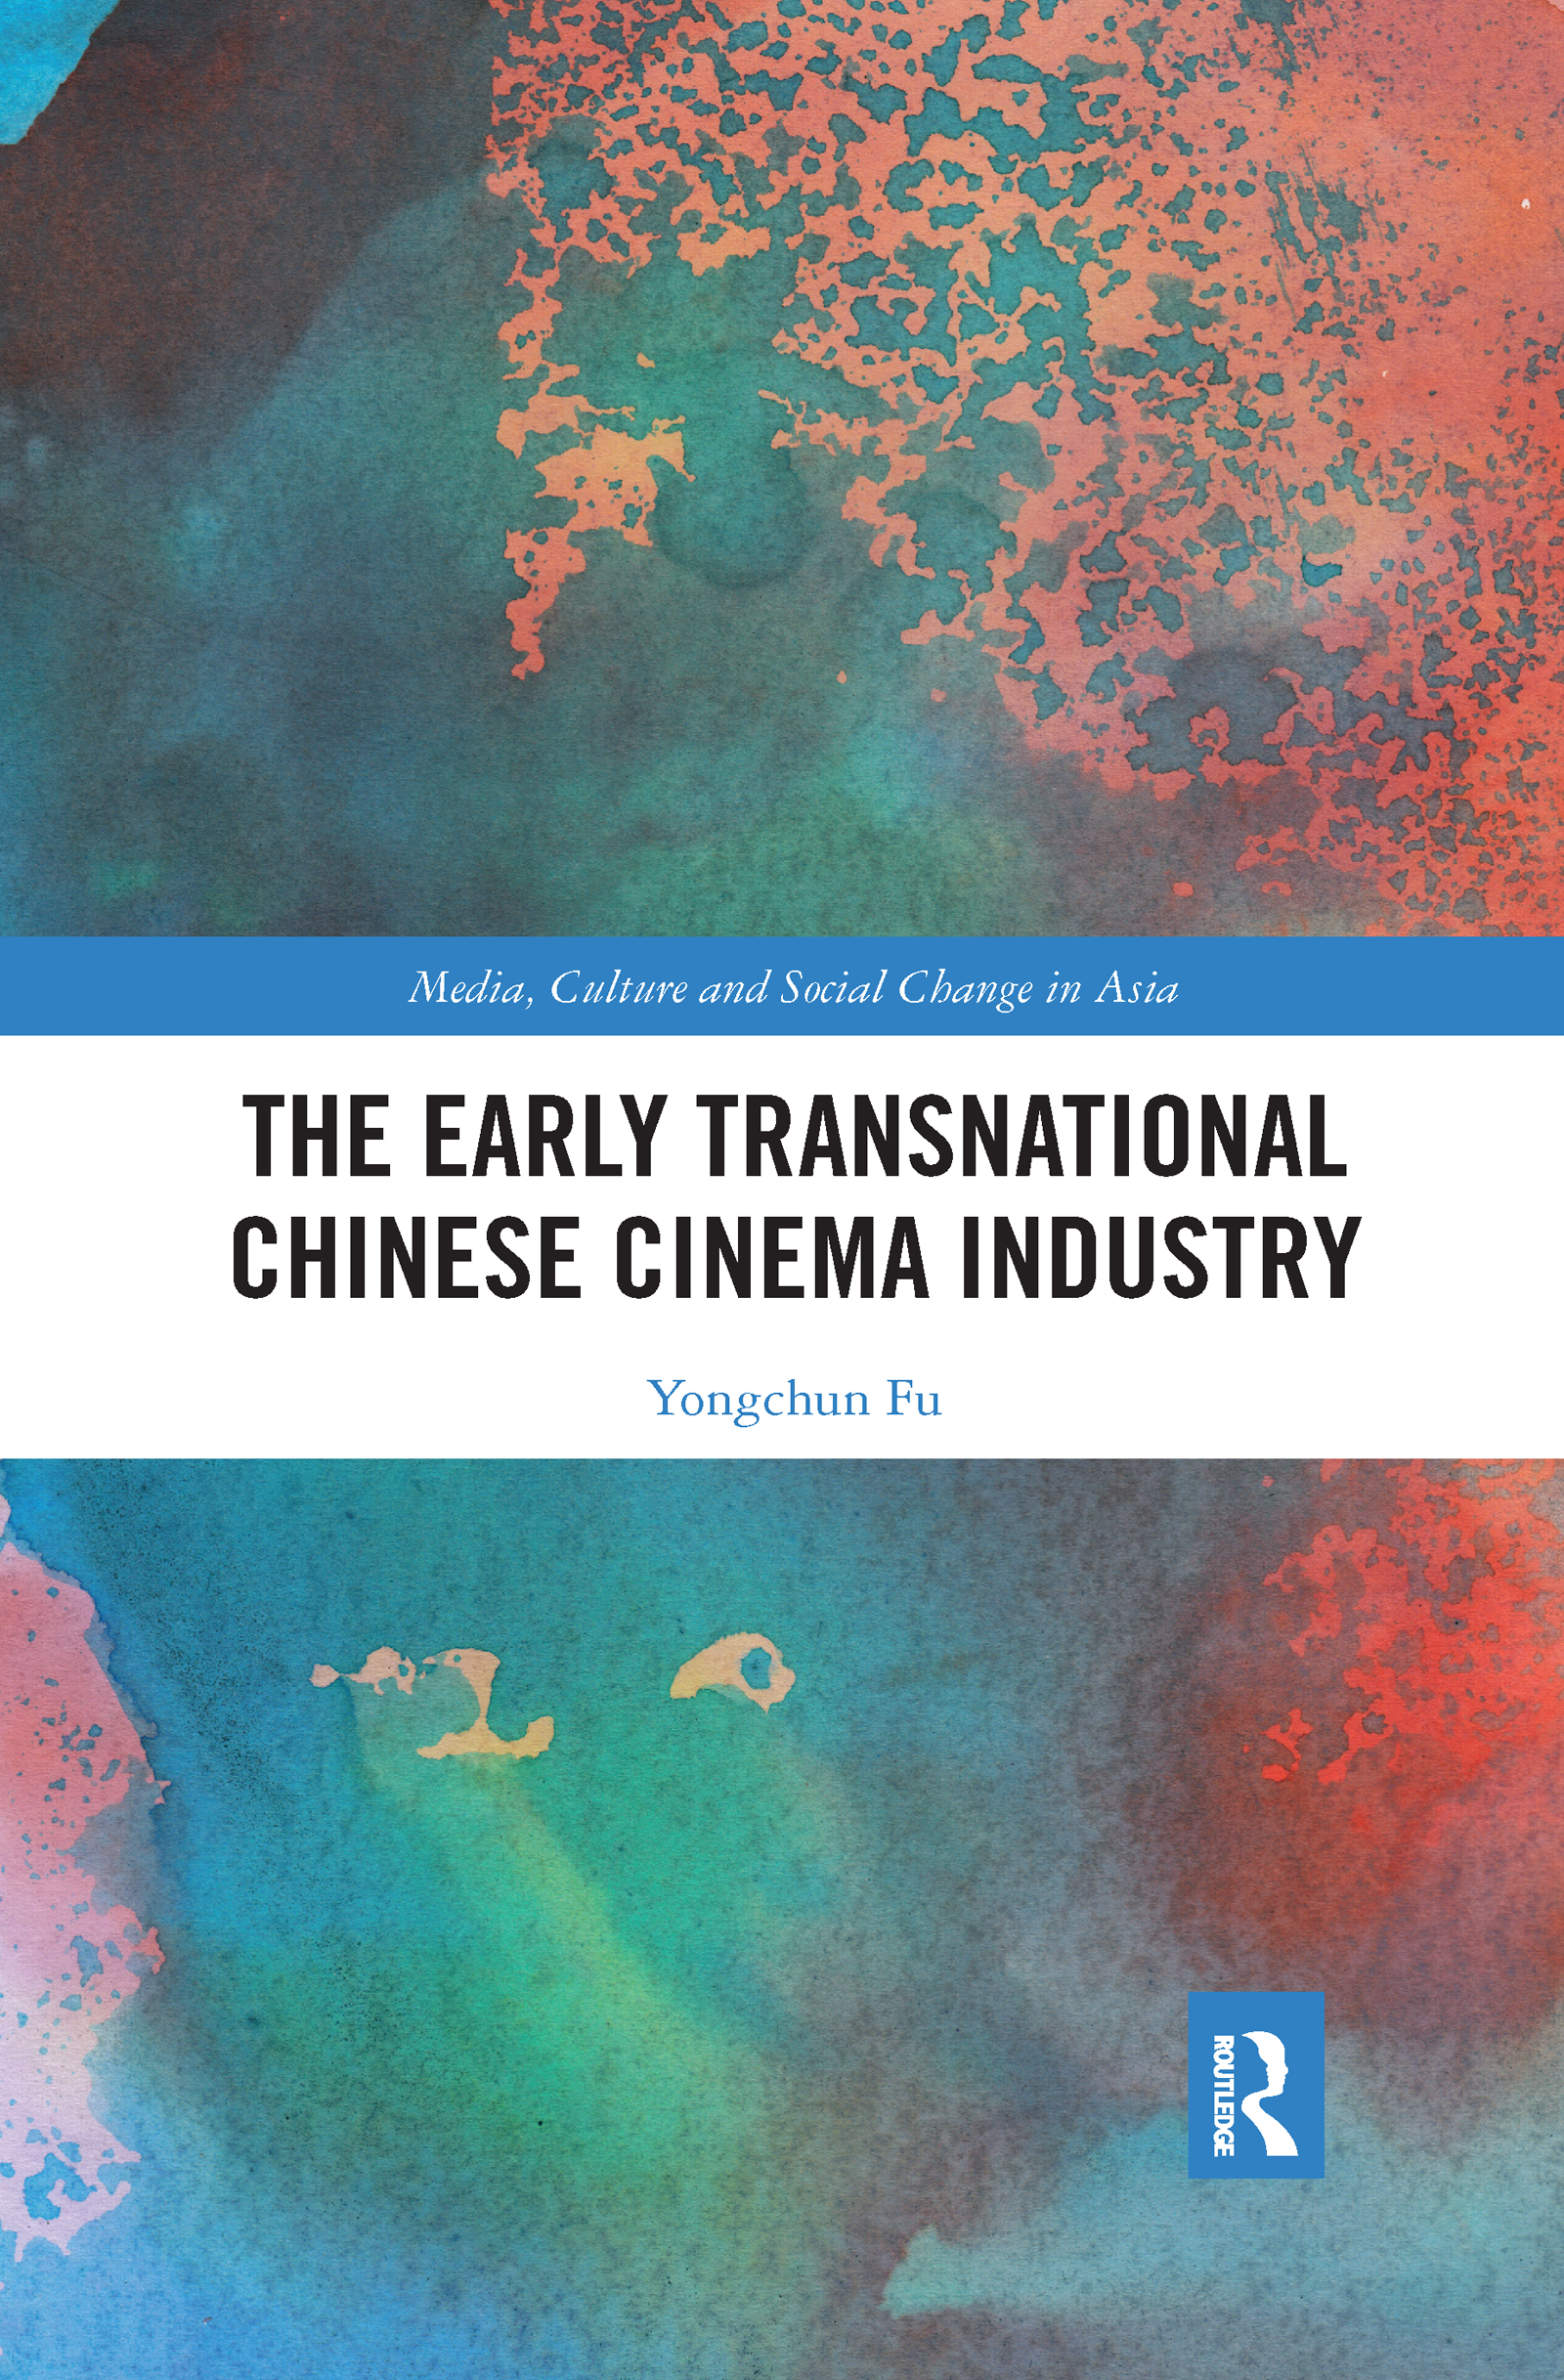 The Early Transnational Chinese Cinema Industry